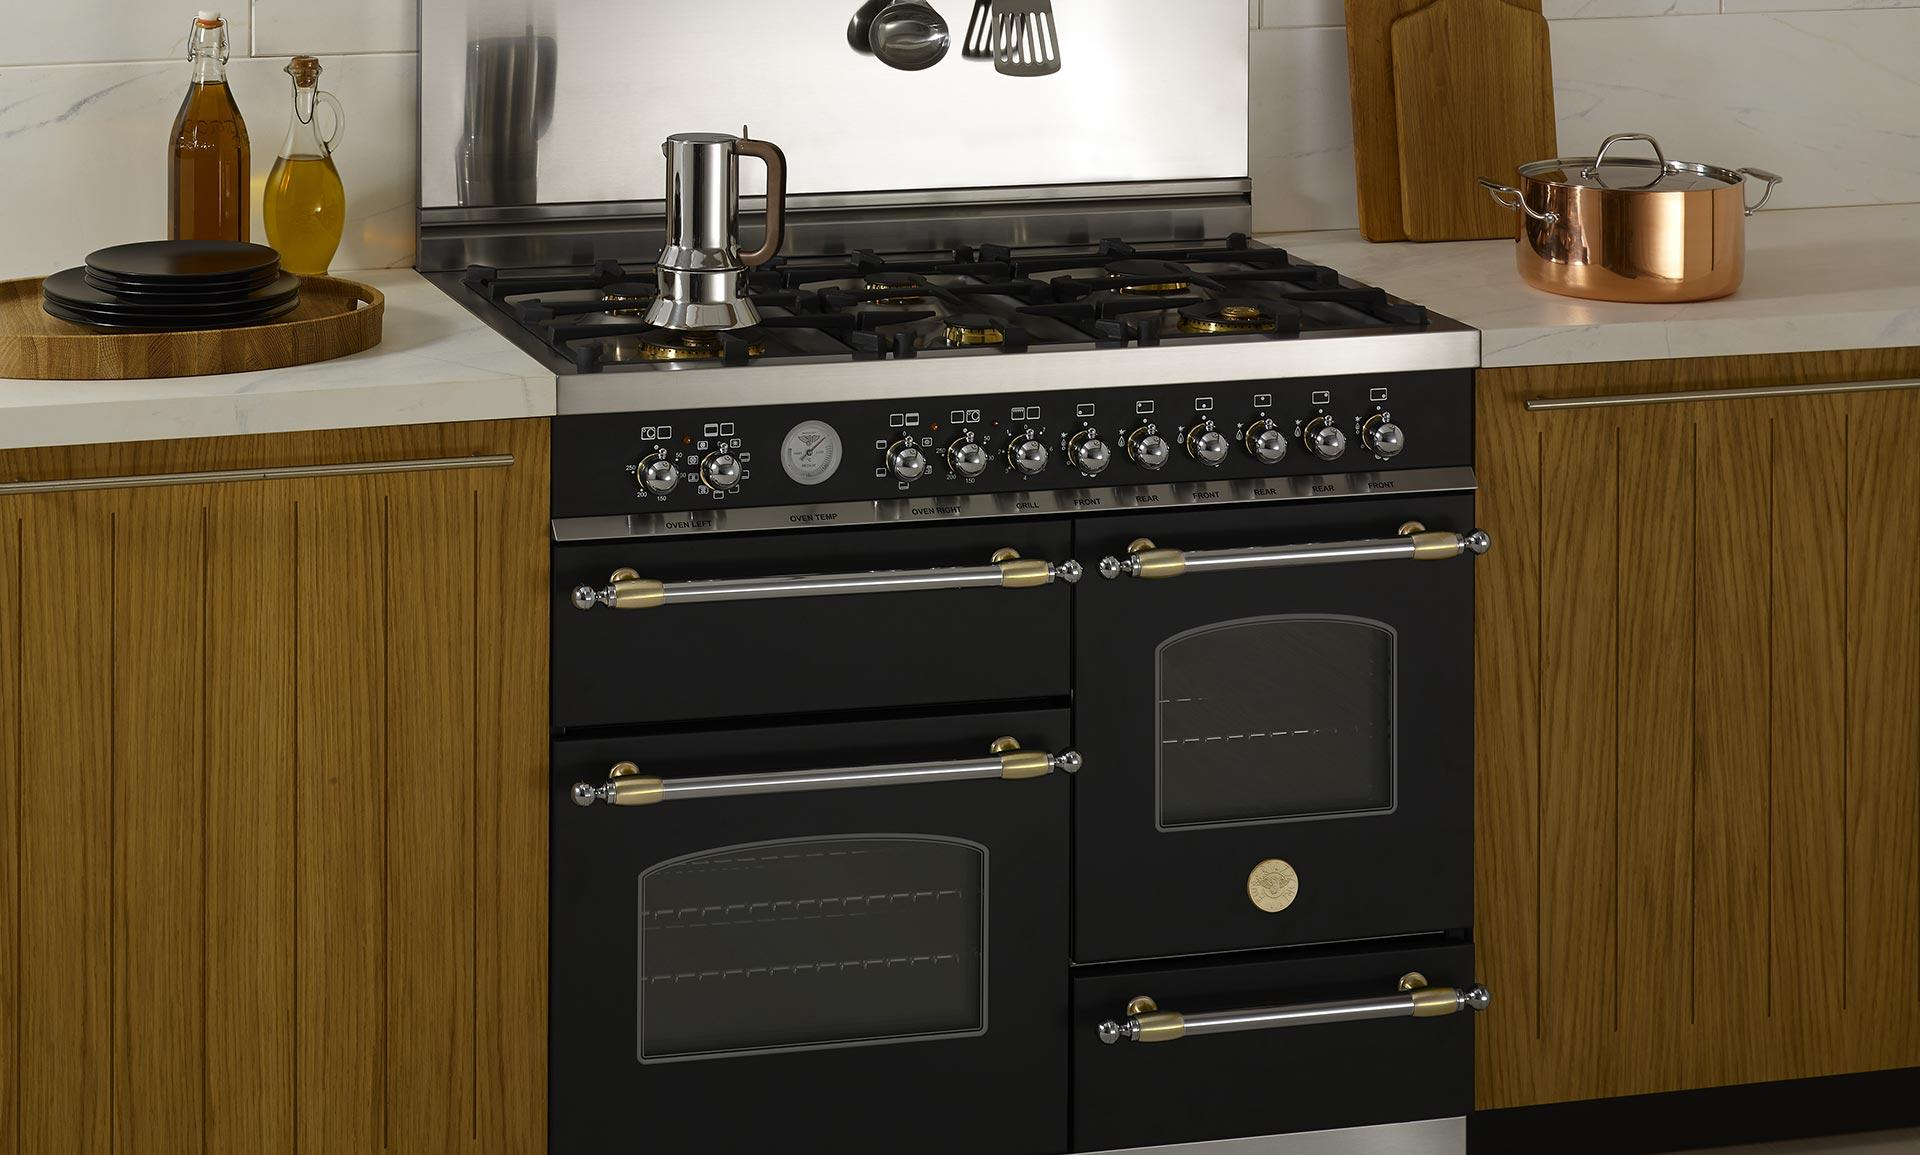 Bertazzoni Heritage in the center of kitchen